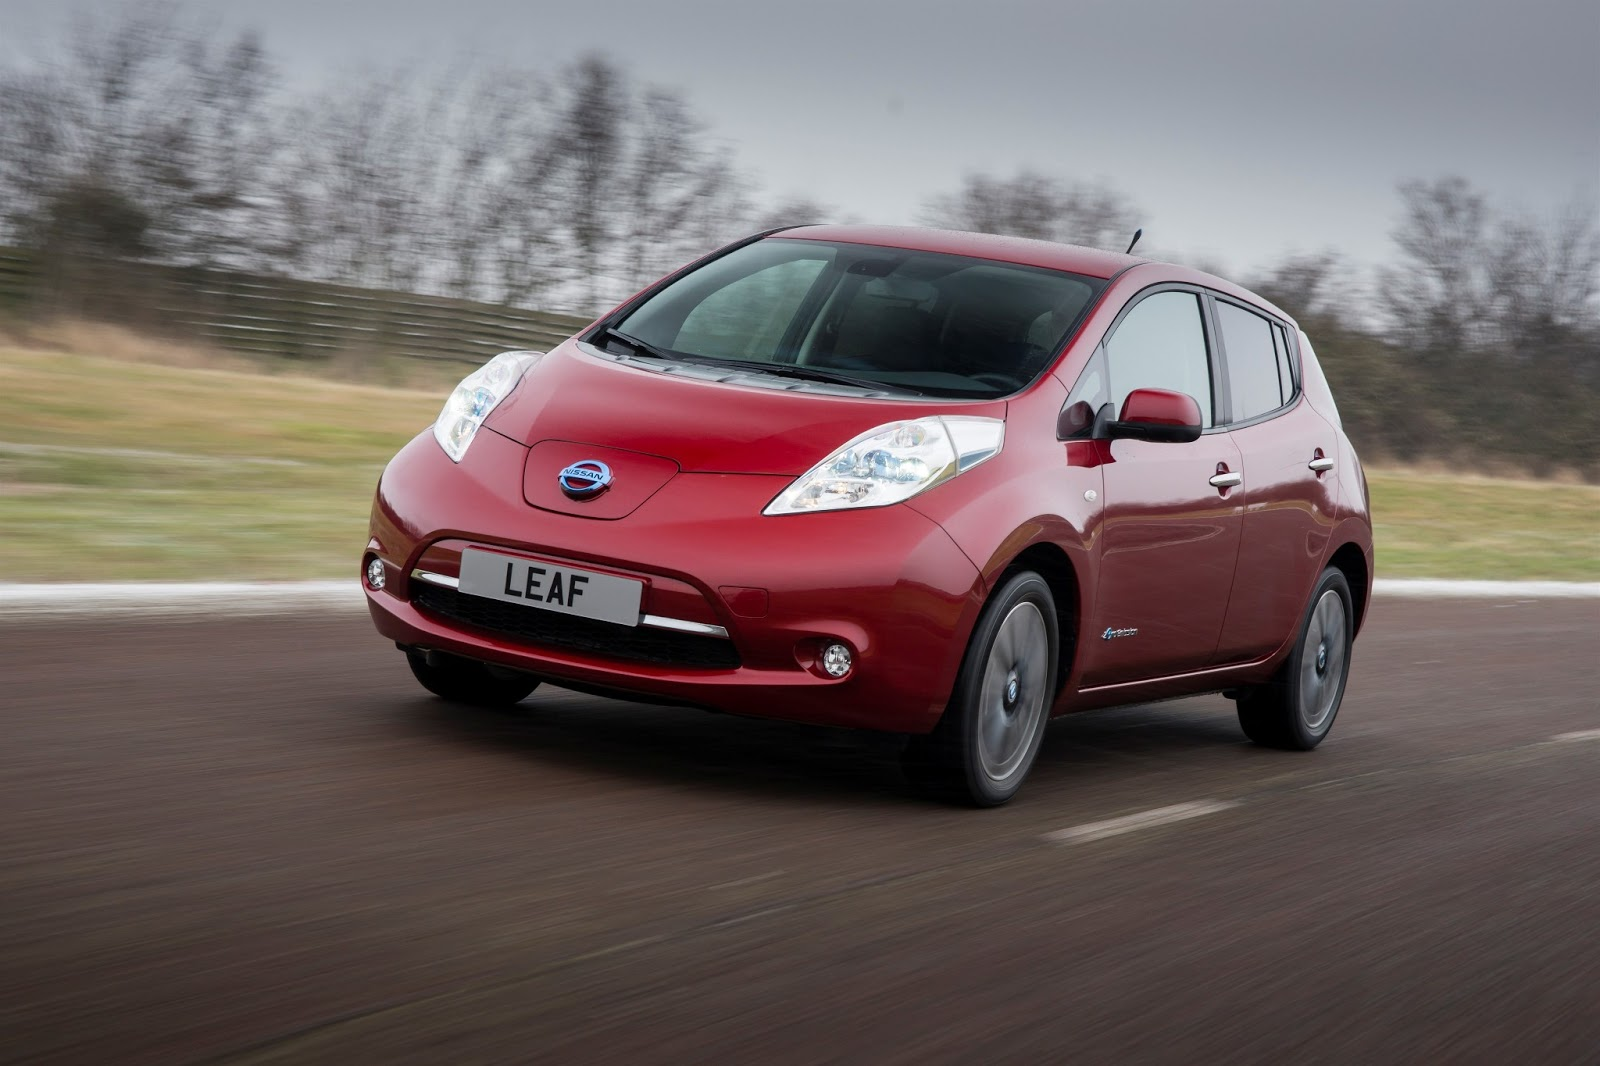 Nissan Announce Battery Replacement Program For Leaf Electric